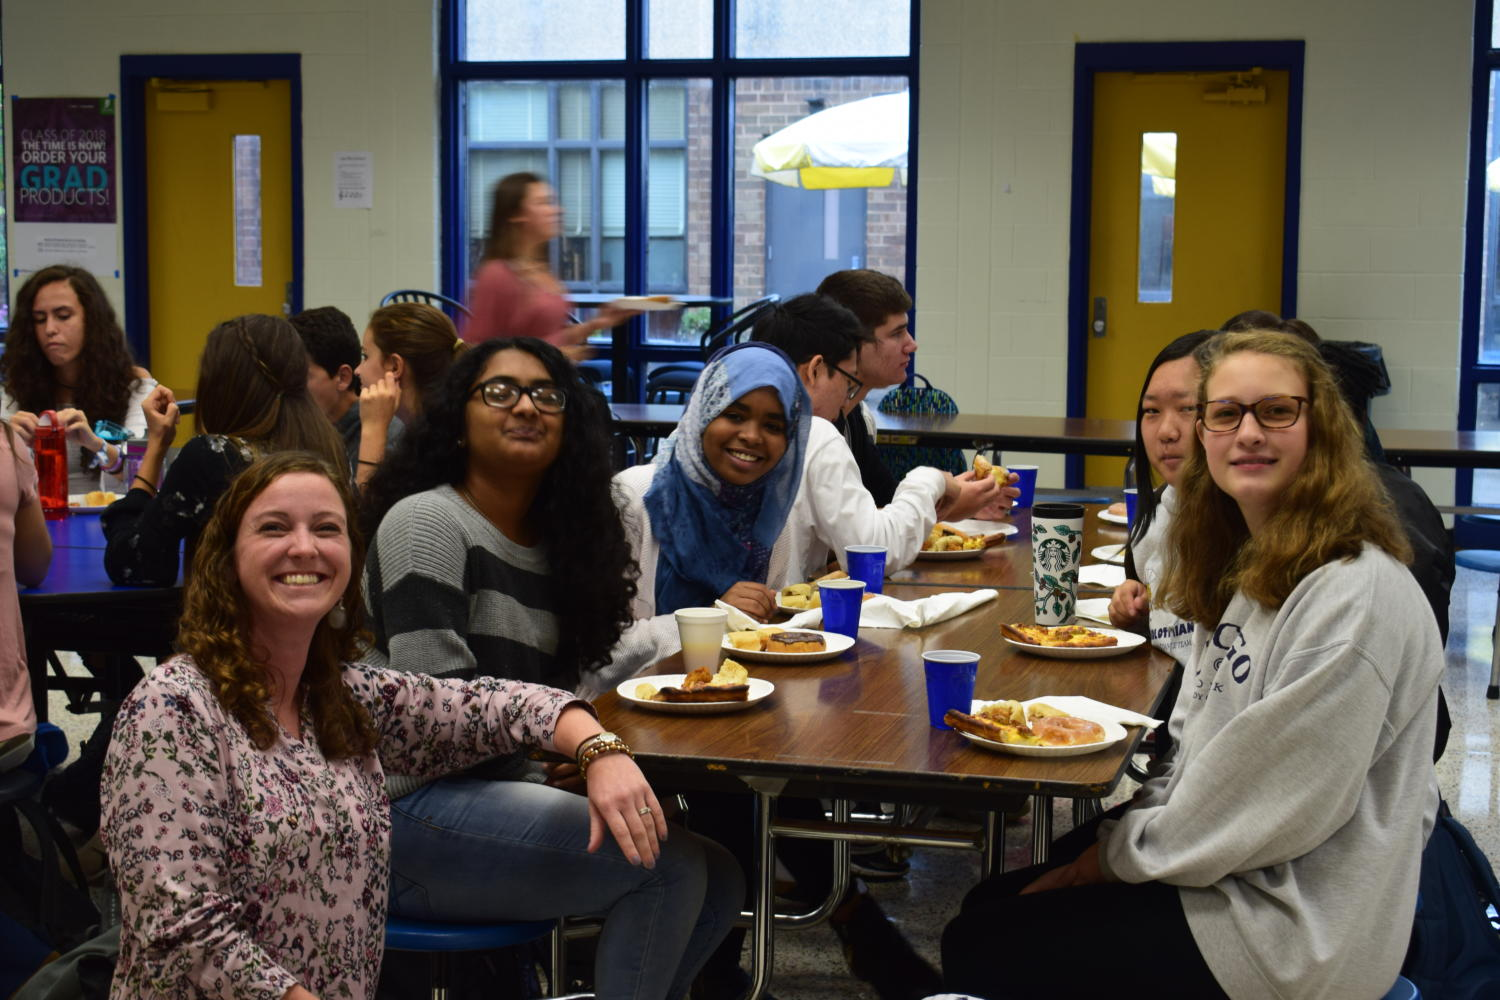 New students enjoy a good breakfast and the company of new friends.